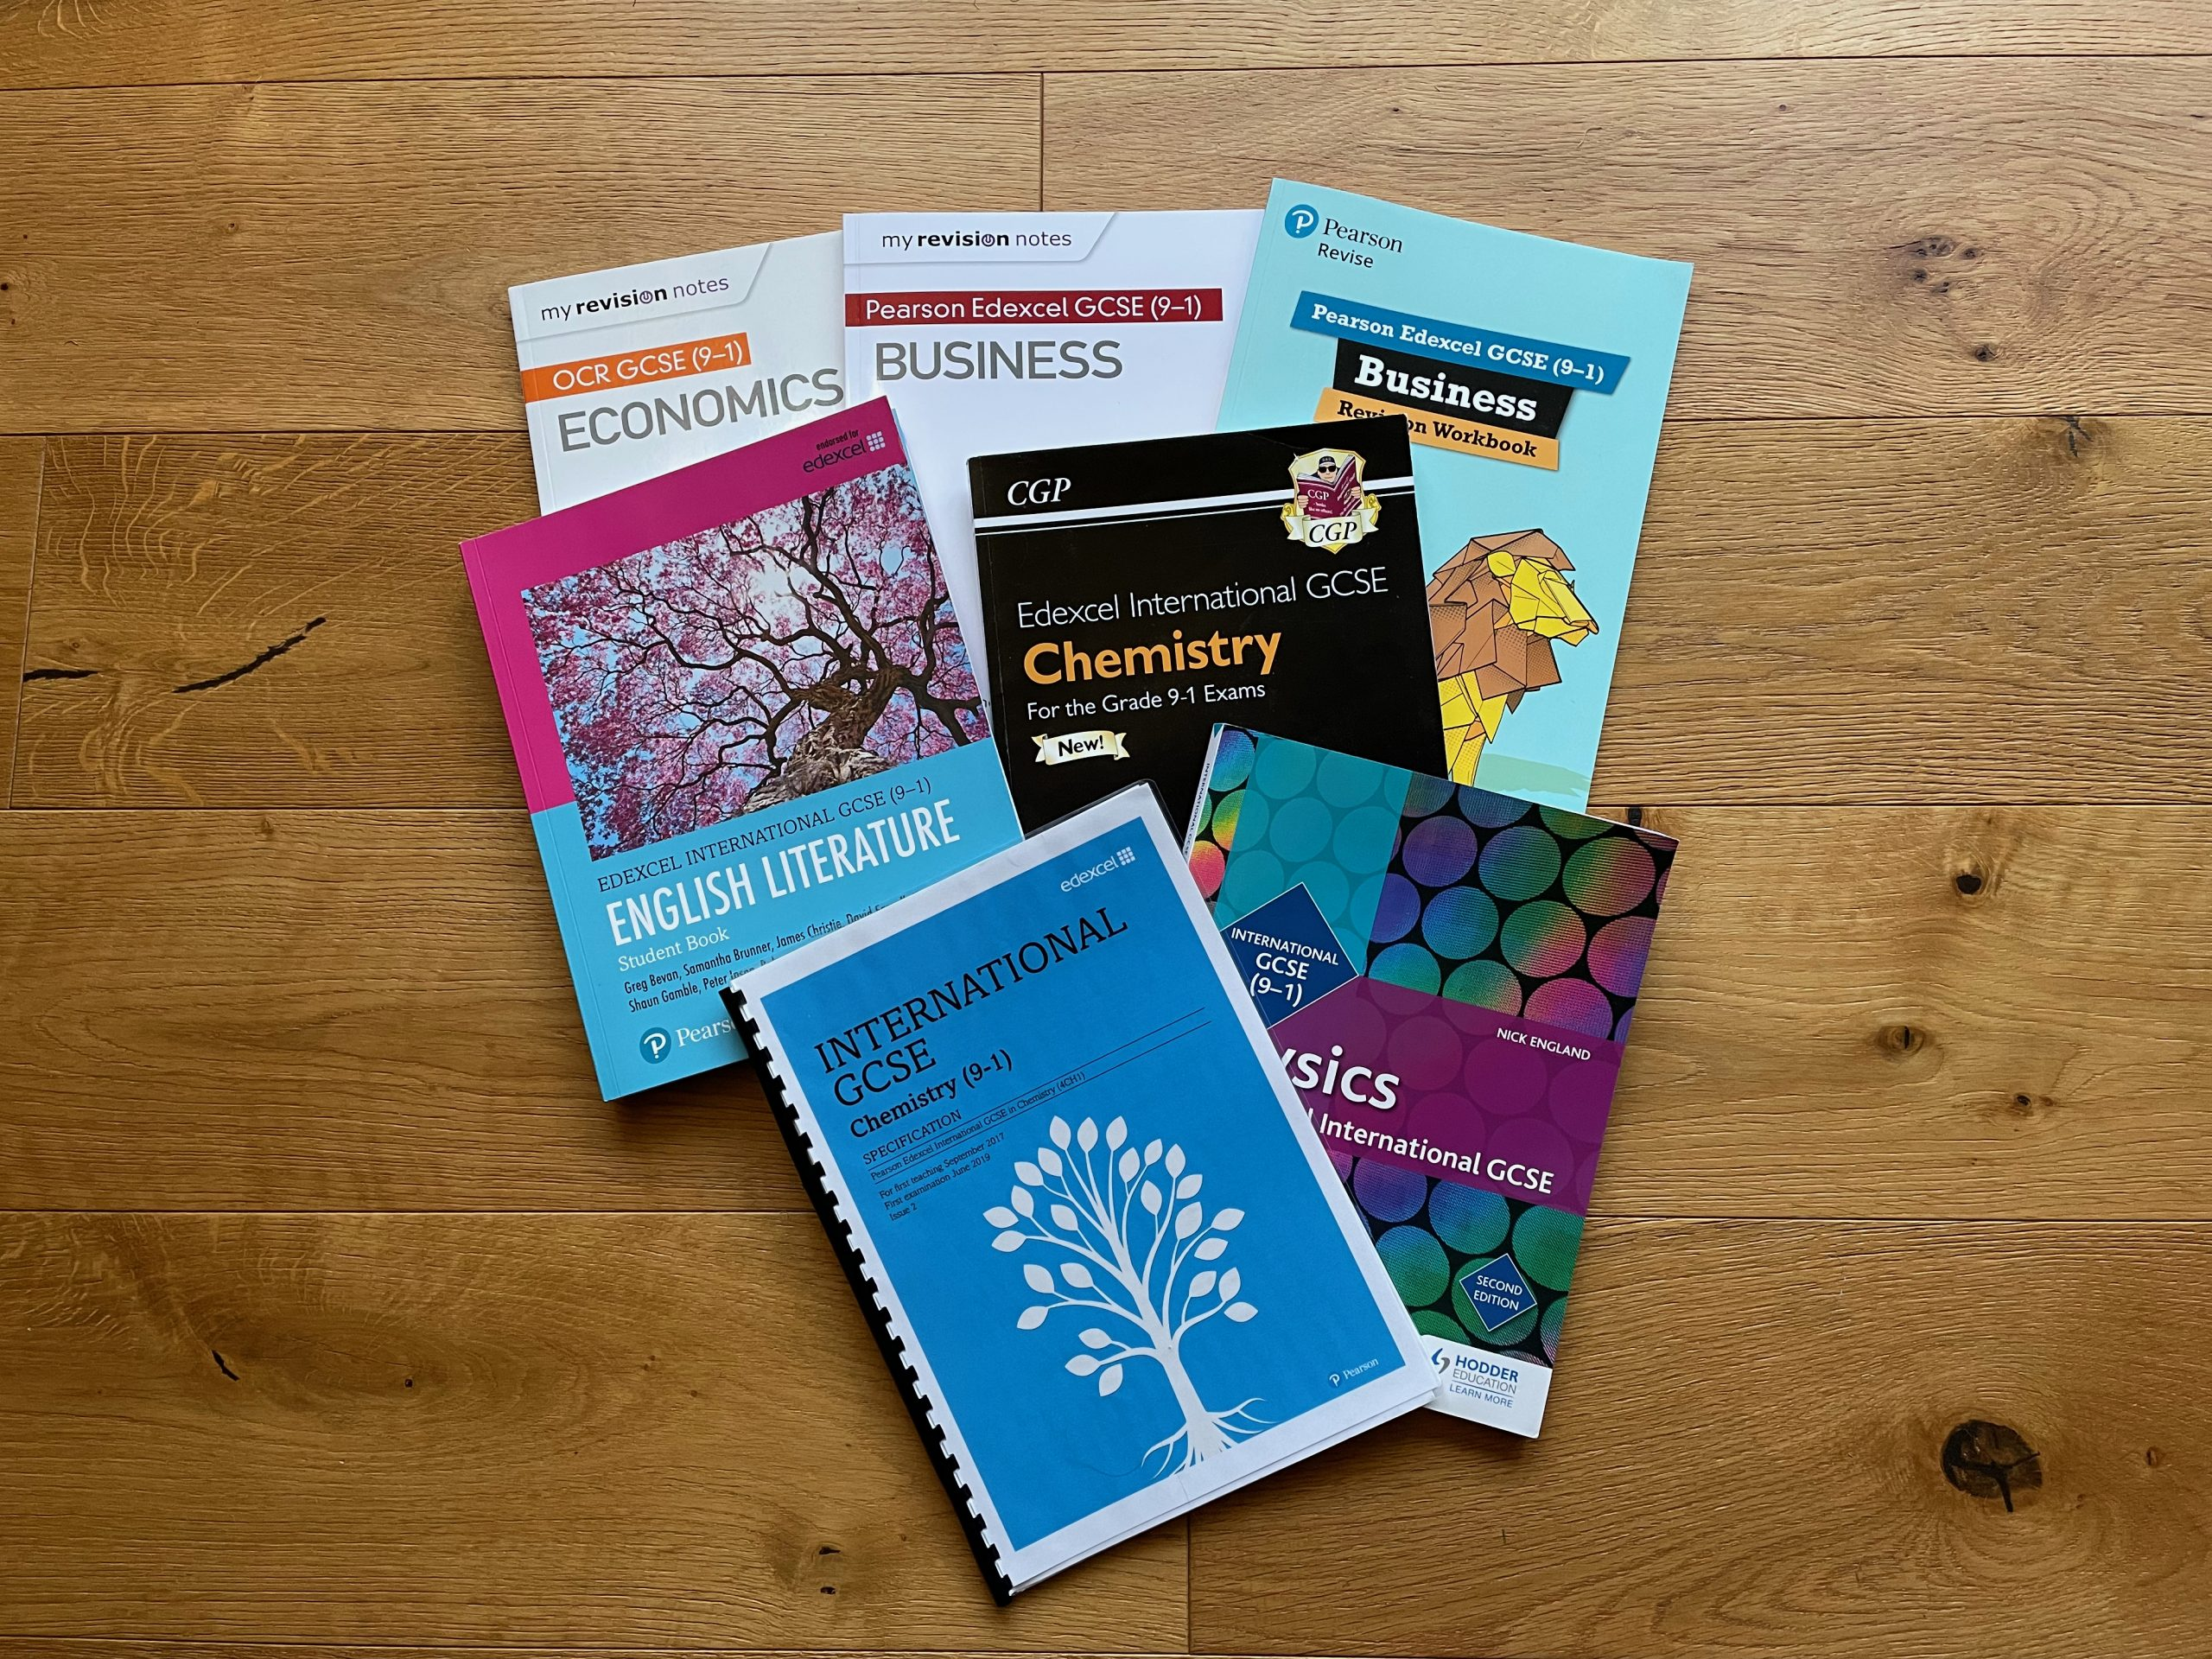 selection of GCSE textbooks lying on a wooden floor